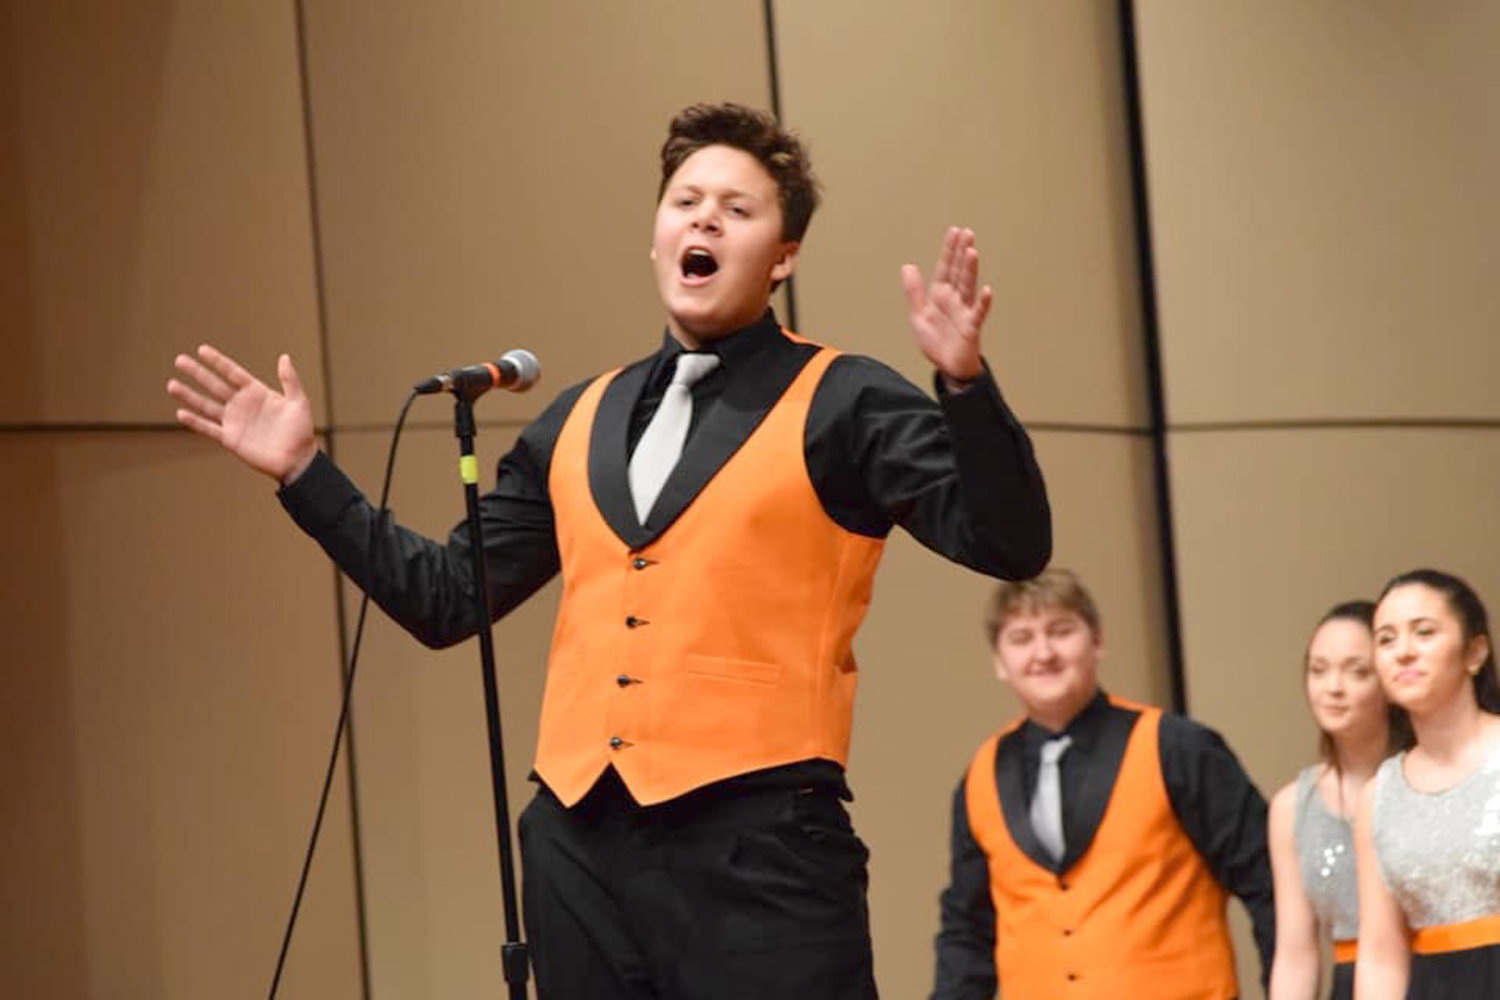 EXPRESSIVE SONG — David Salce, a vocalist in Rome Free Academy's Rhapsody Show Choir, is shown during a recent performance. Rhapsody will host a performance tonight with the Rome Community Theatre Talent Team and the Denti Elementary Drama Club at the RFA auditorium. It begins at 7 p.m.